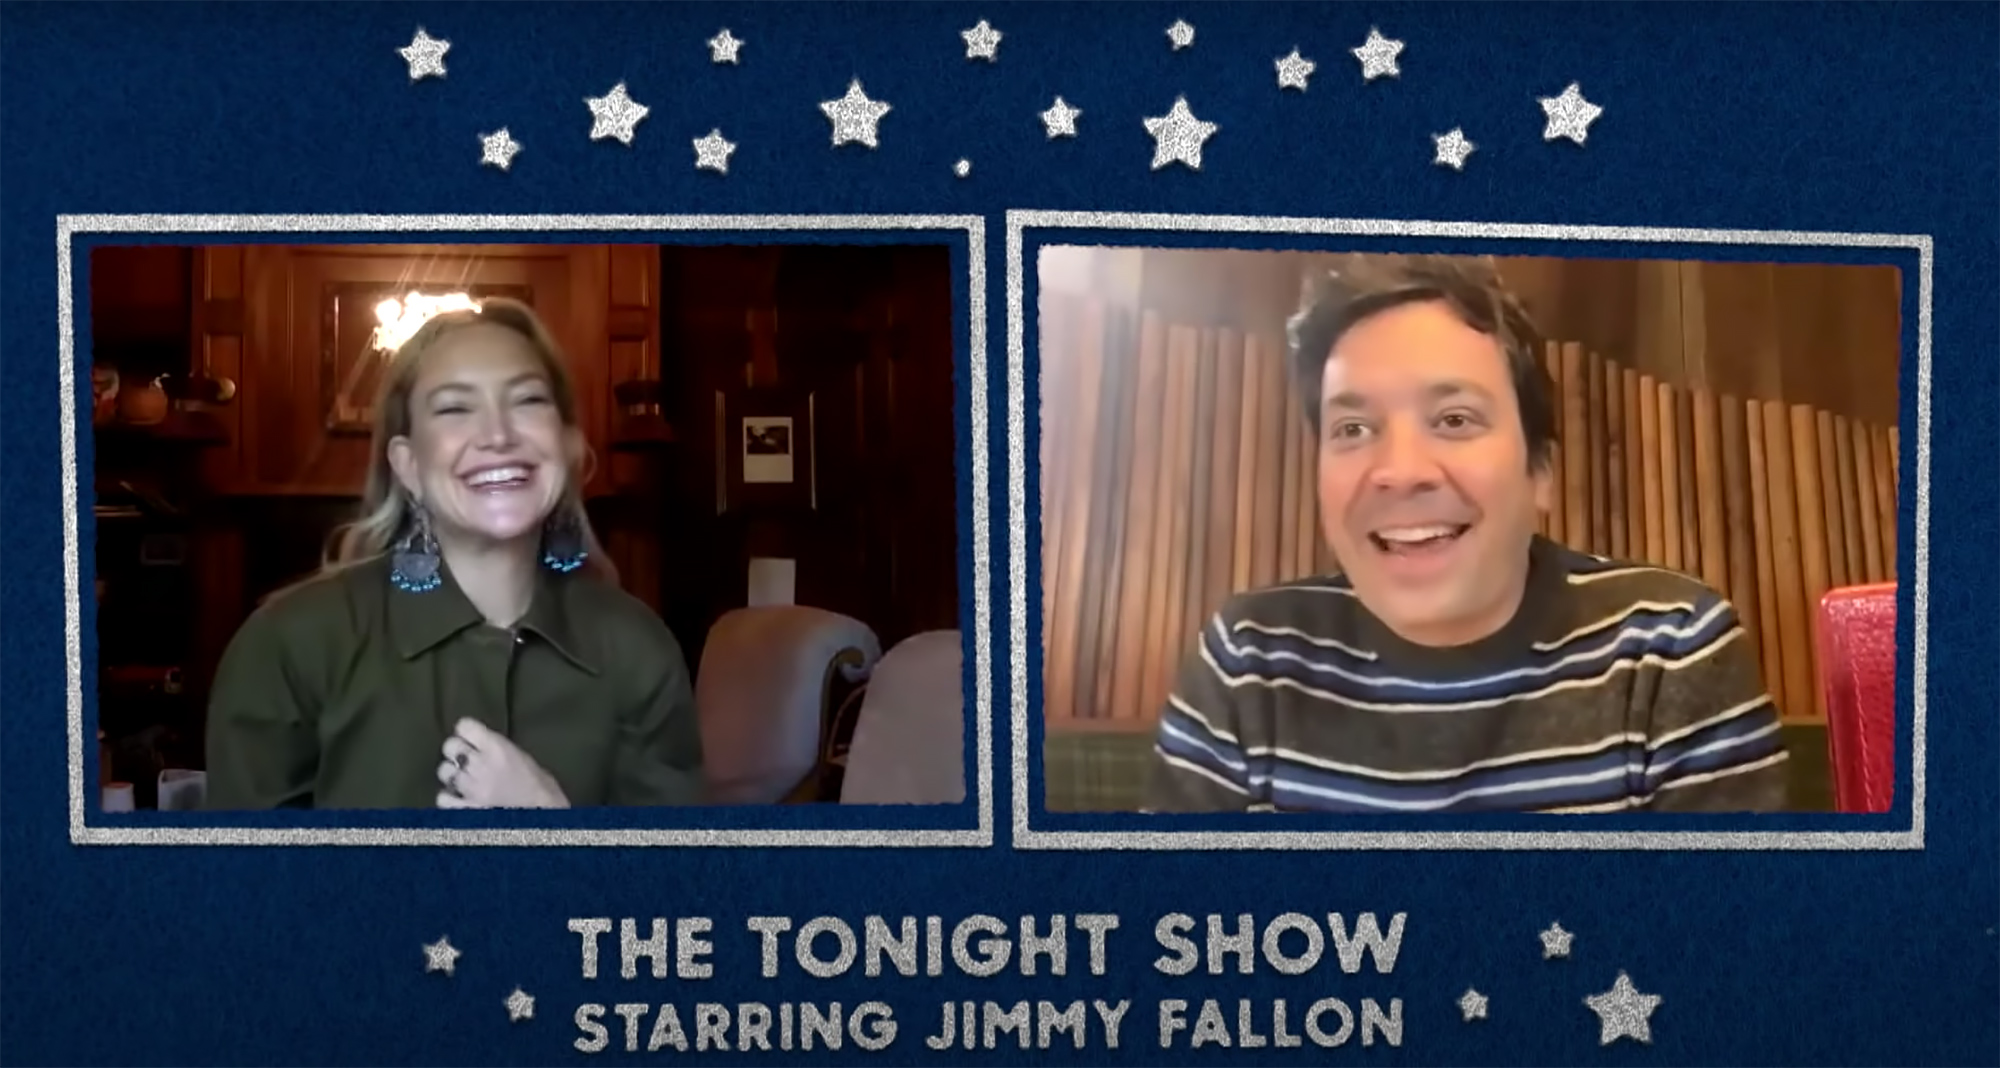 Kate Hudson Admits Wouldve Dated Jimmy Fallon Almost Famous Set 2